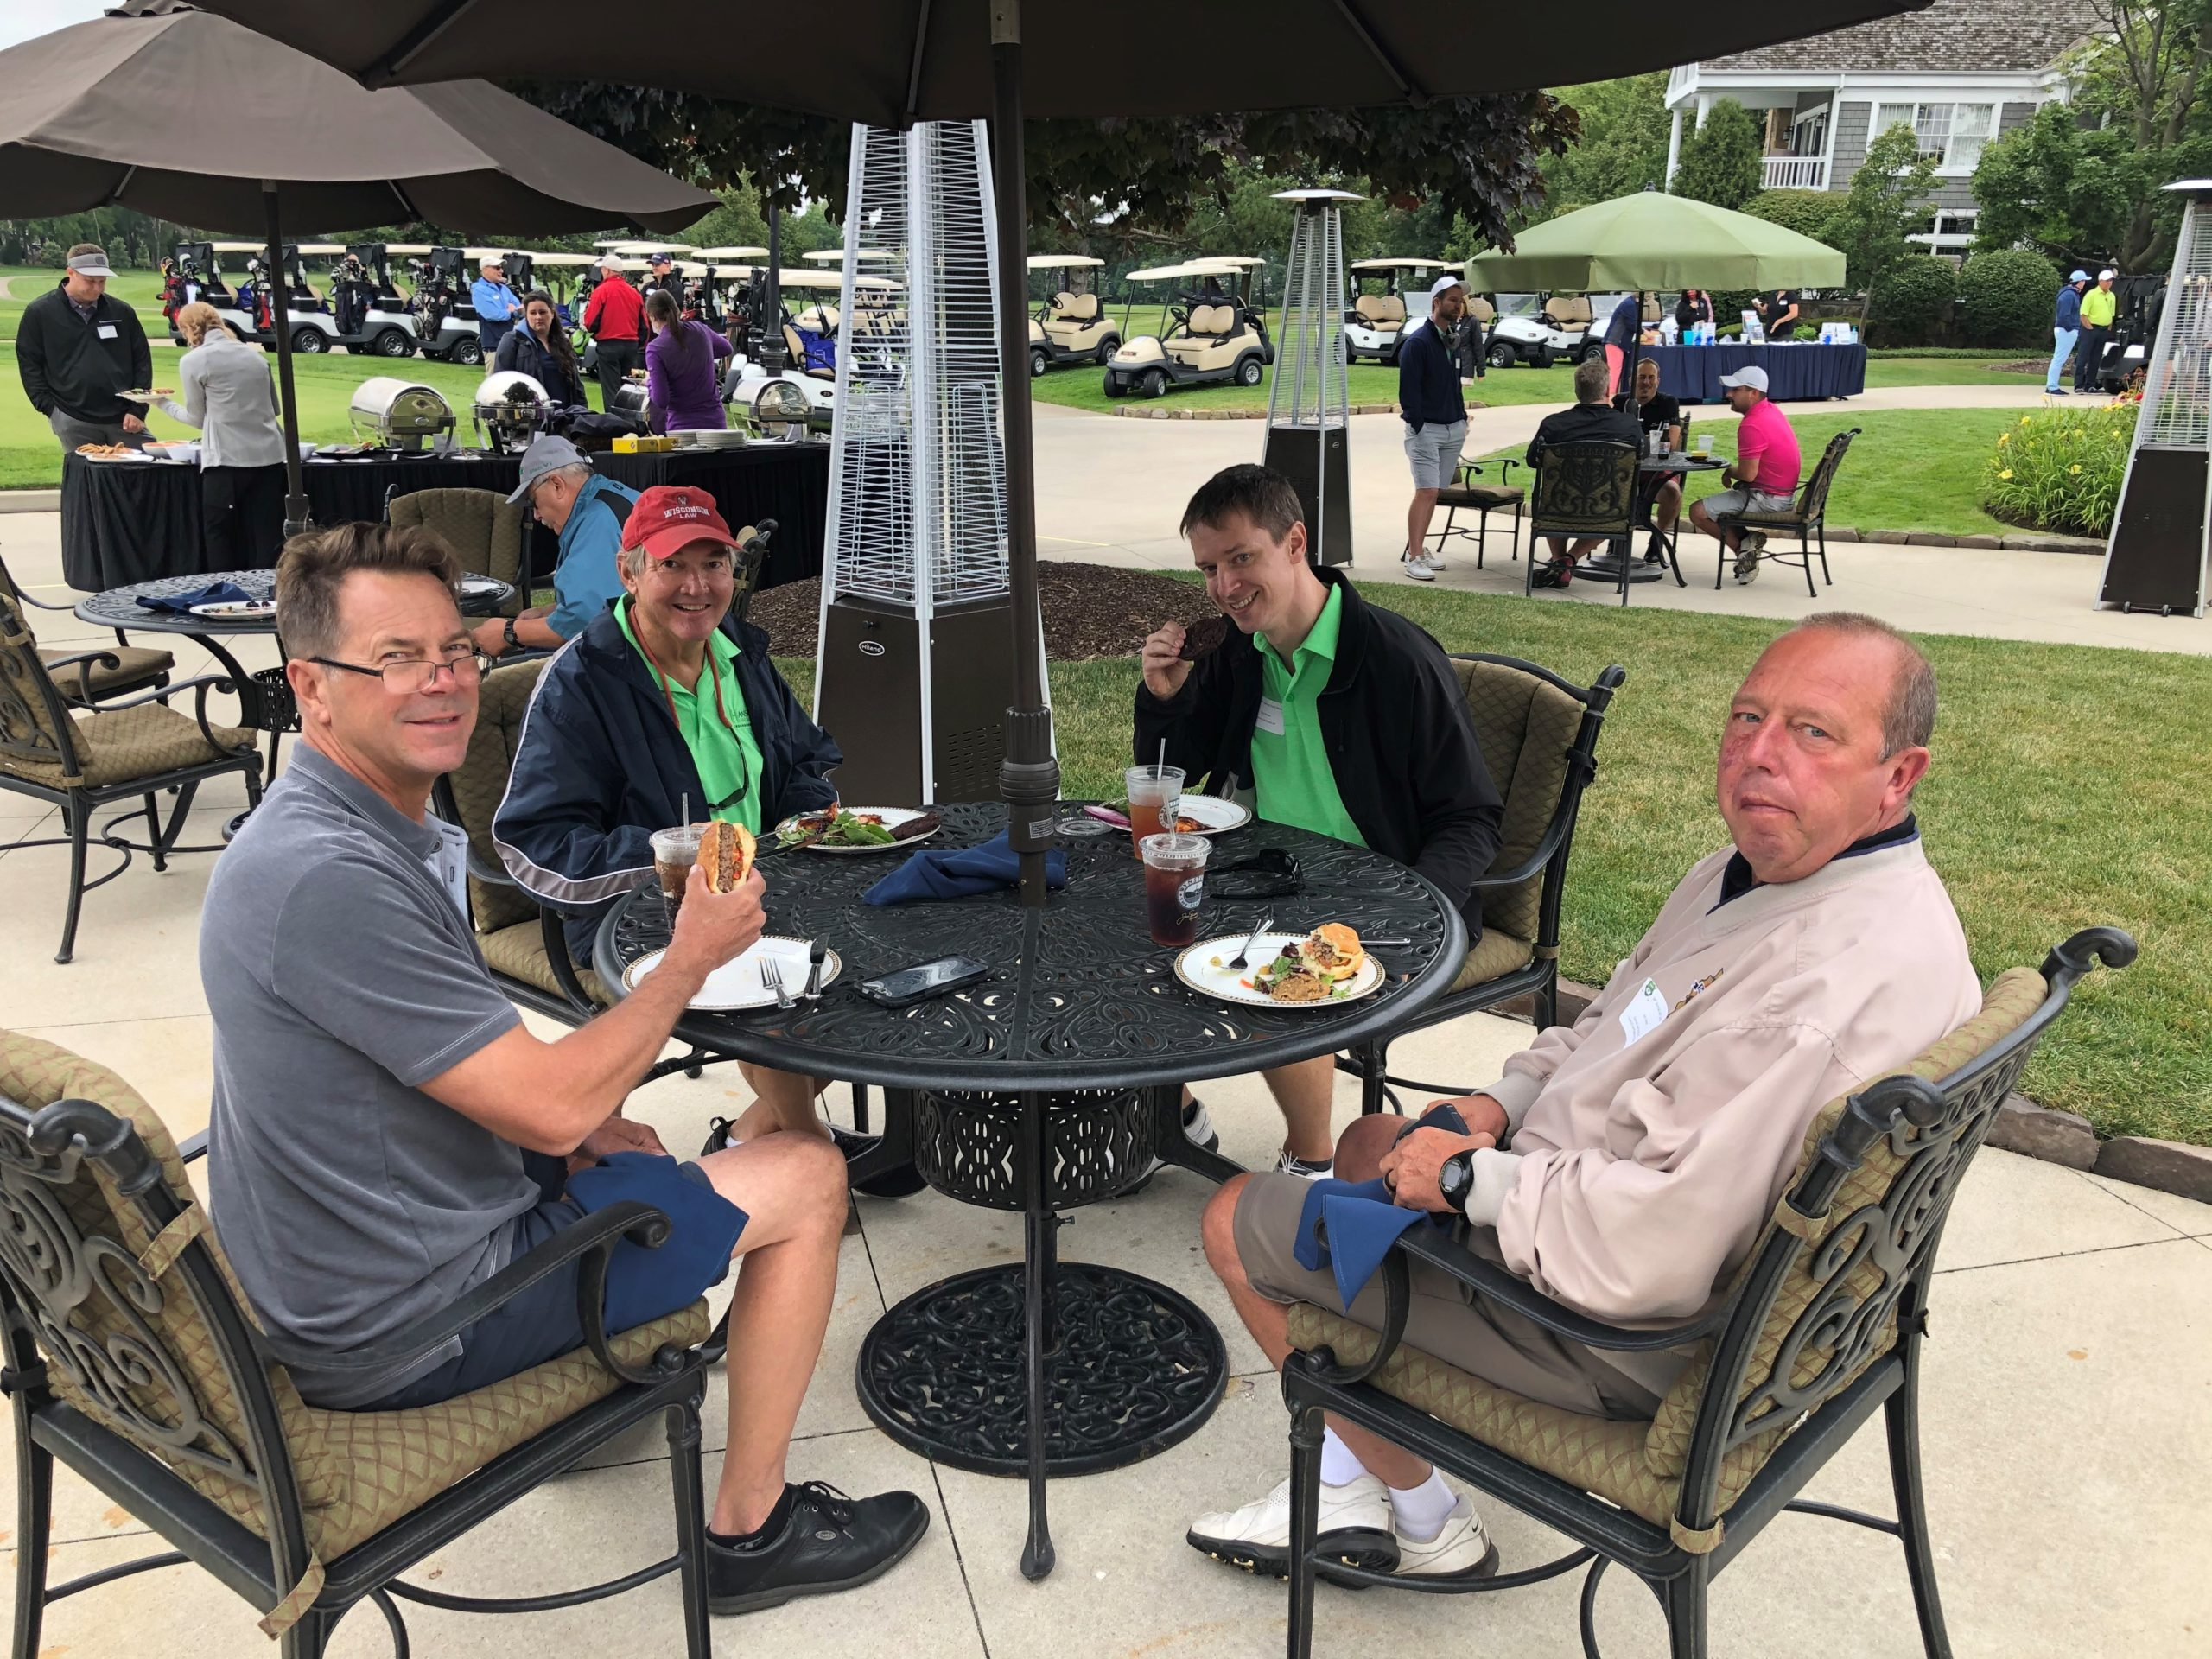 Keith Hanson and Group on patio